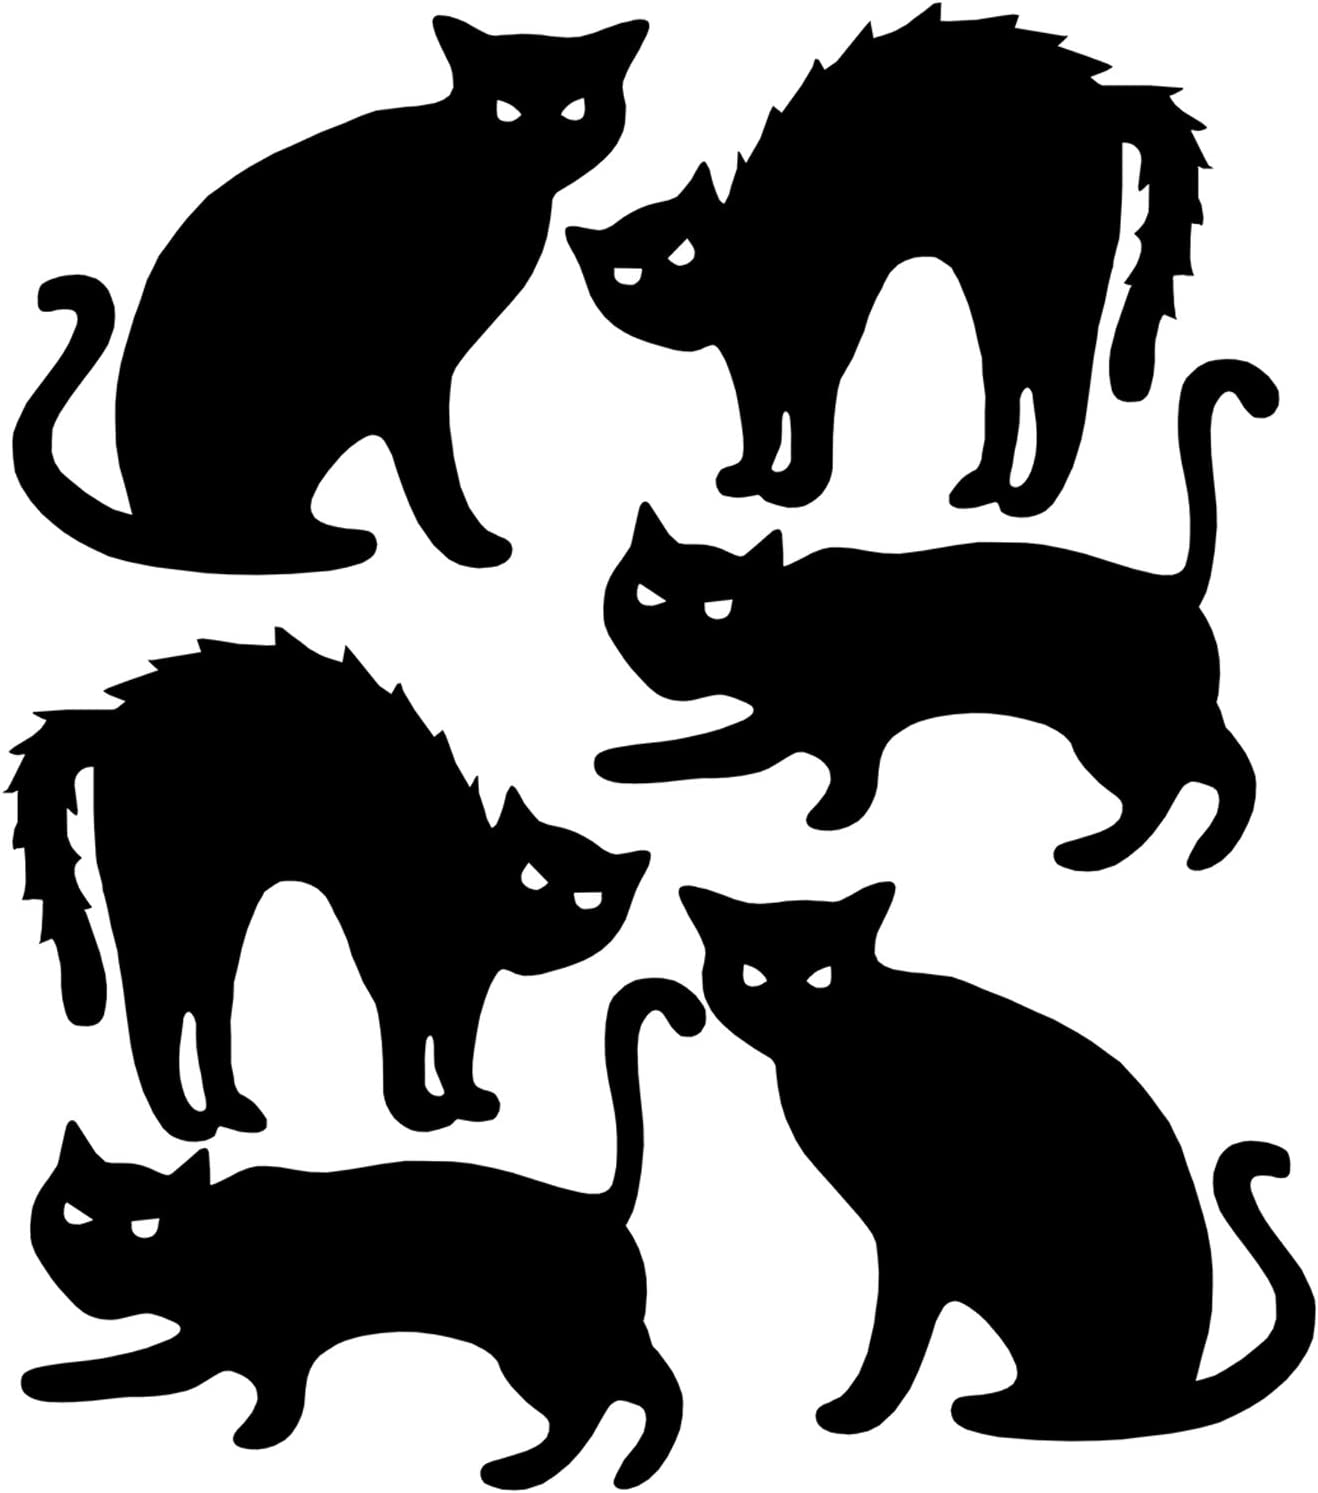 Deloky Halloween Yard Signs with Stakes- Black Cat Silhouette Yard Signs with Stakes-Halloween Yard Lawn Party Signs Decorations (6PCS Cat)